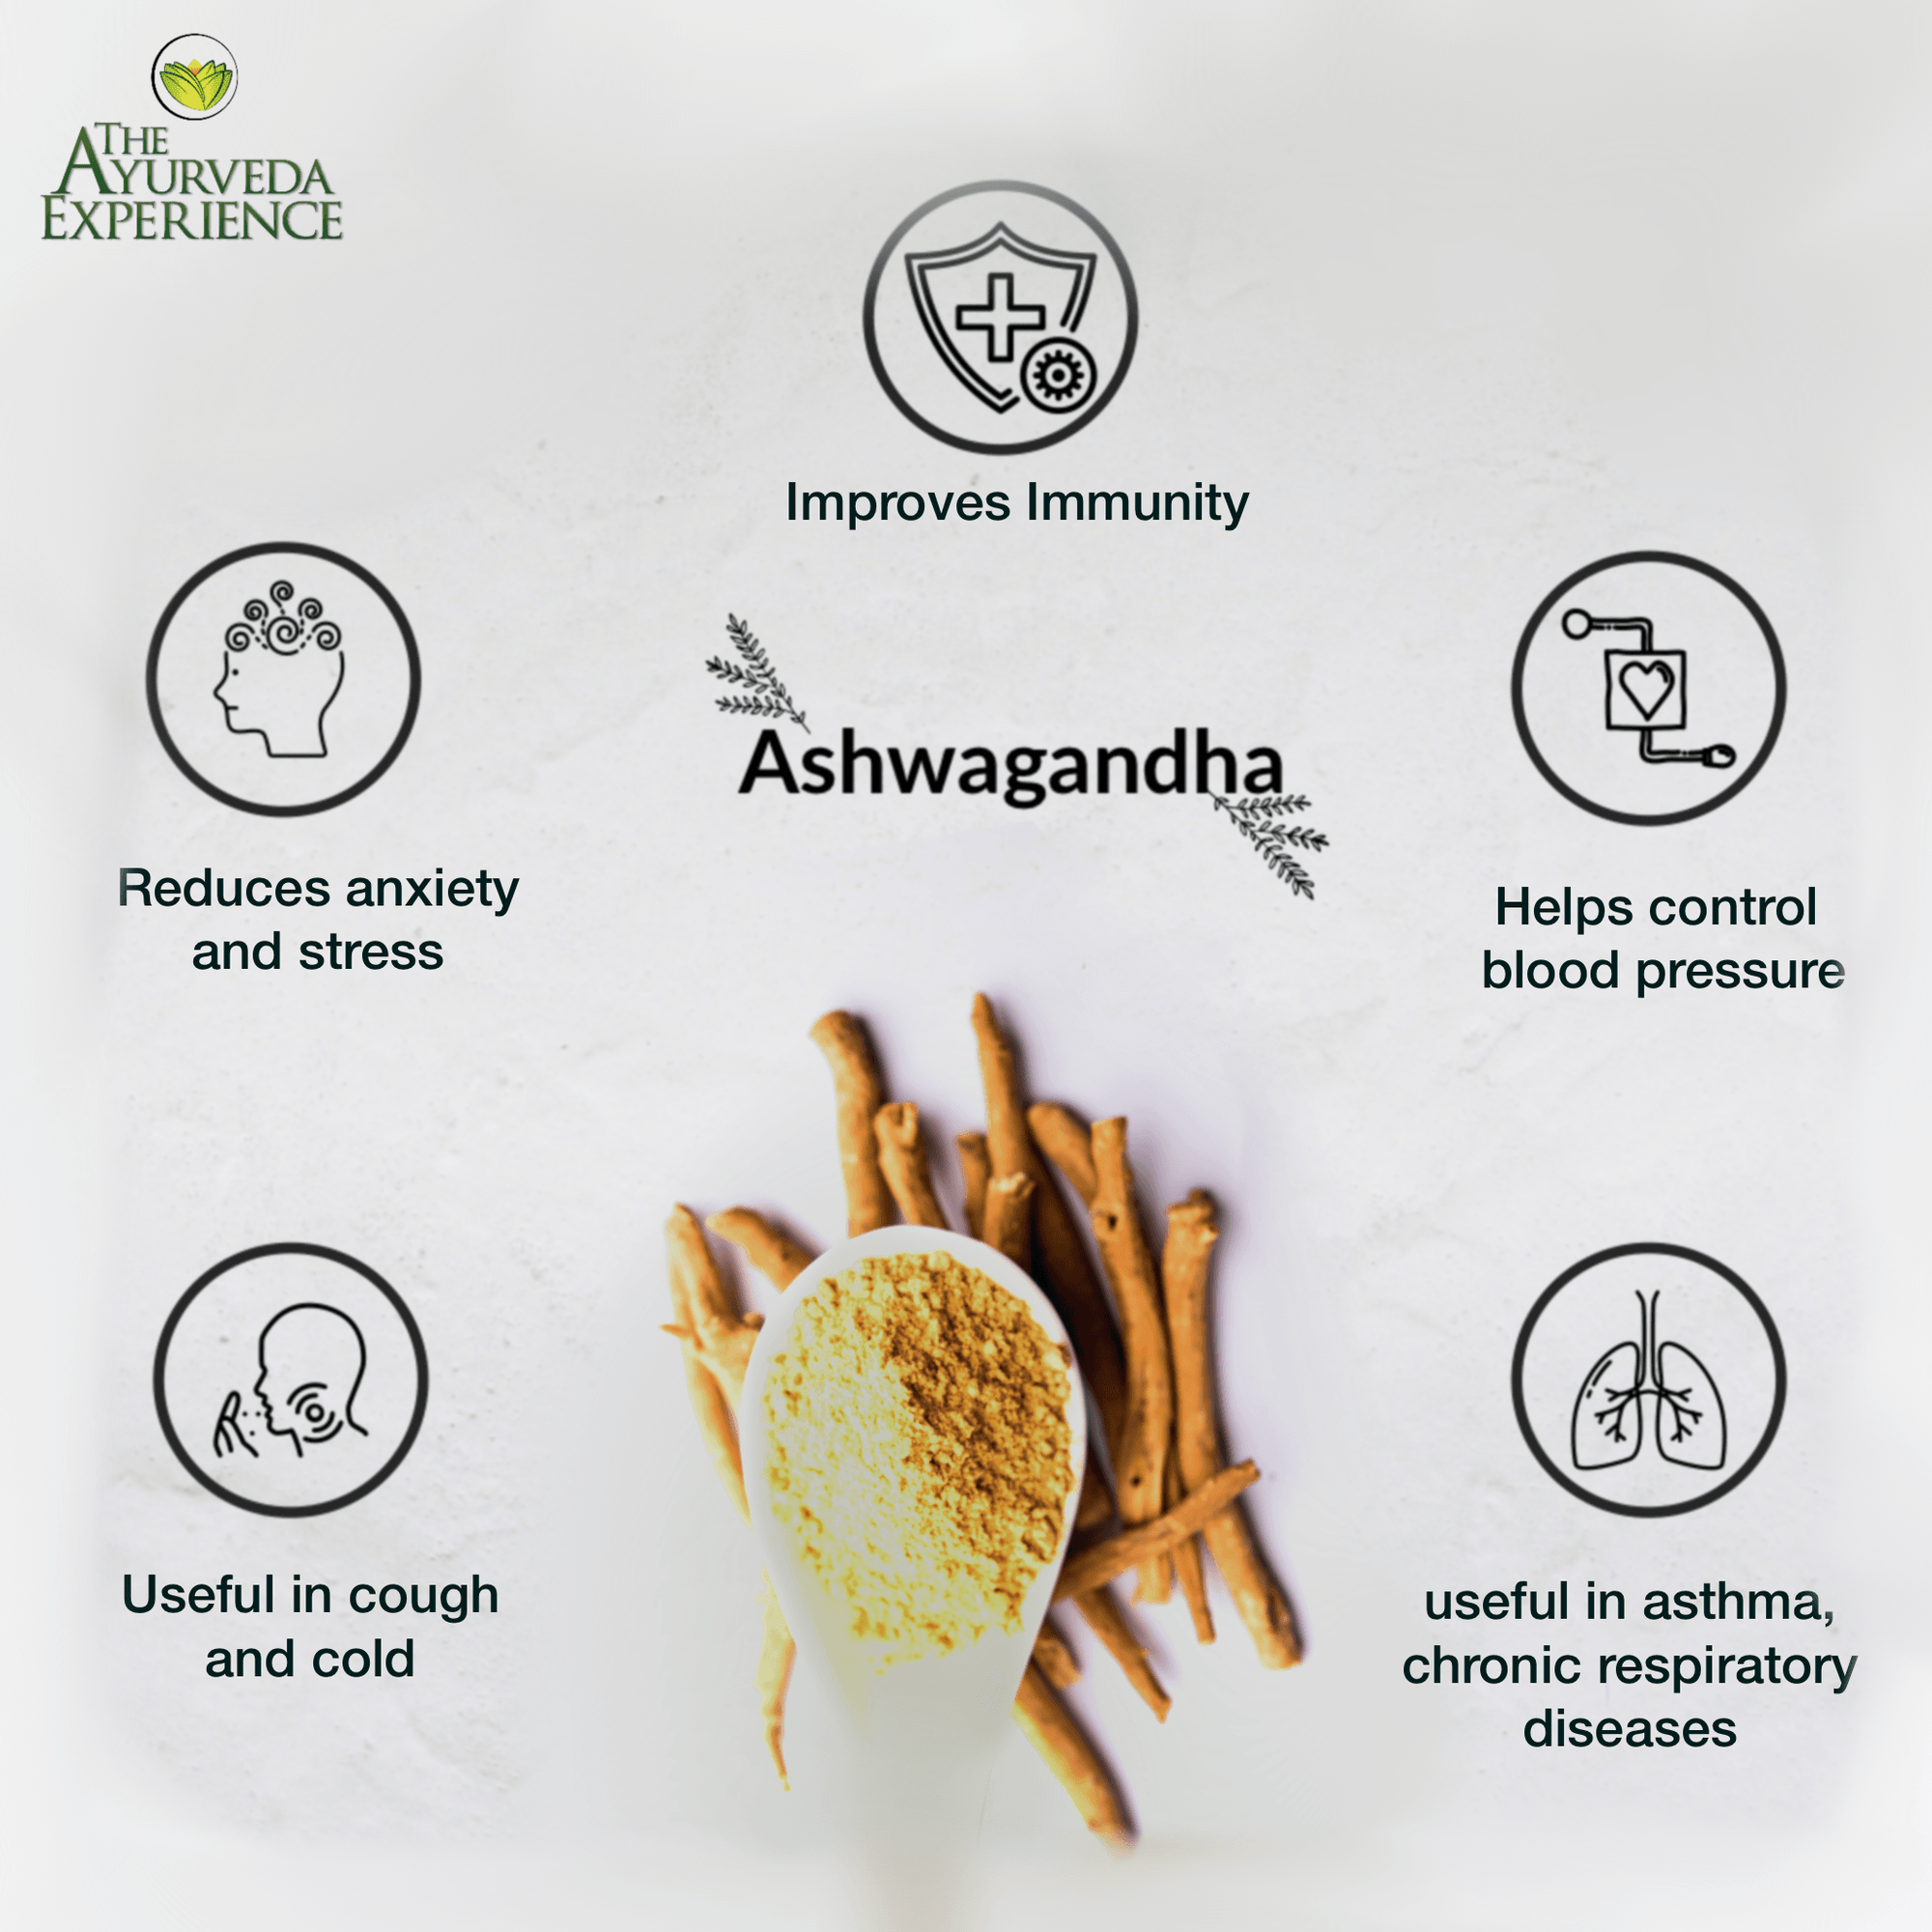 Chemistry of Ashwagandha and usability in different diseases